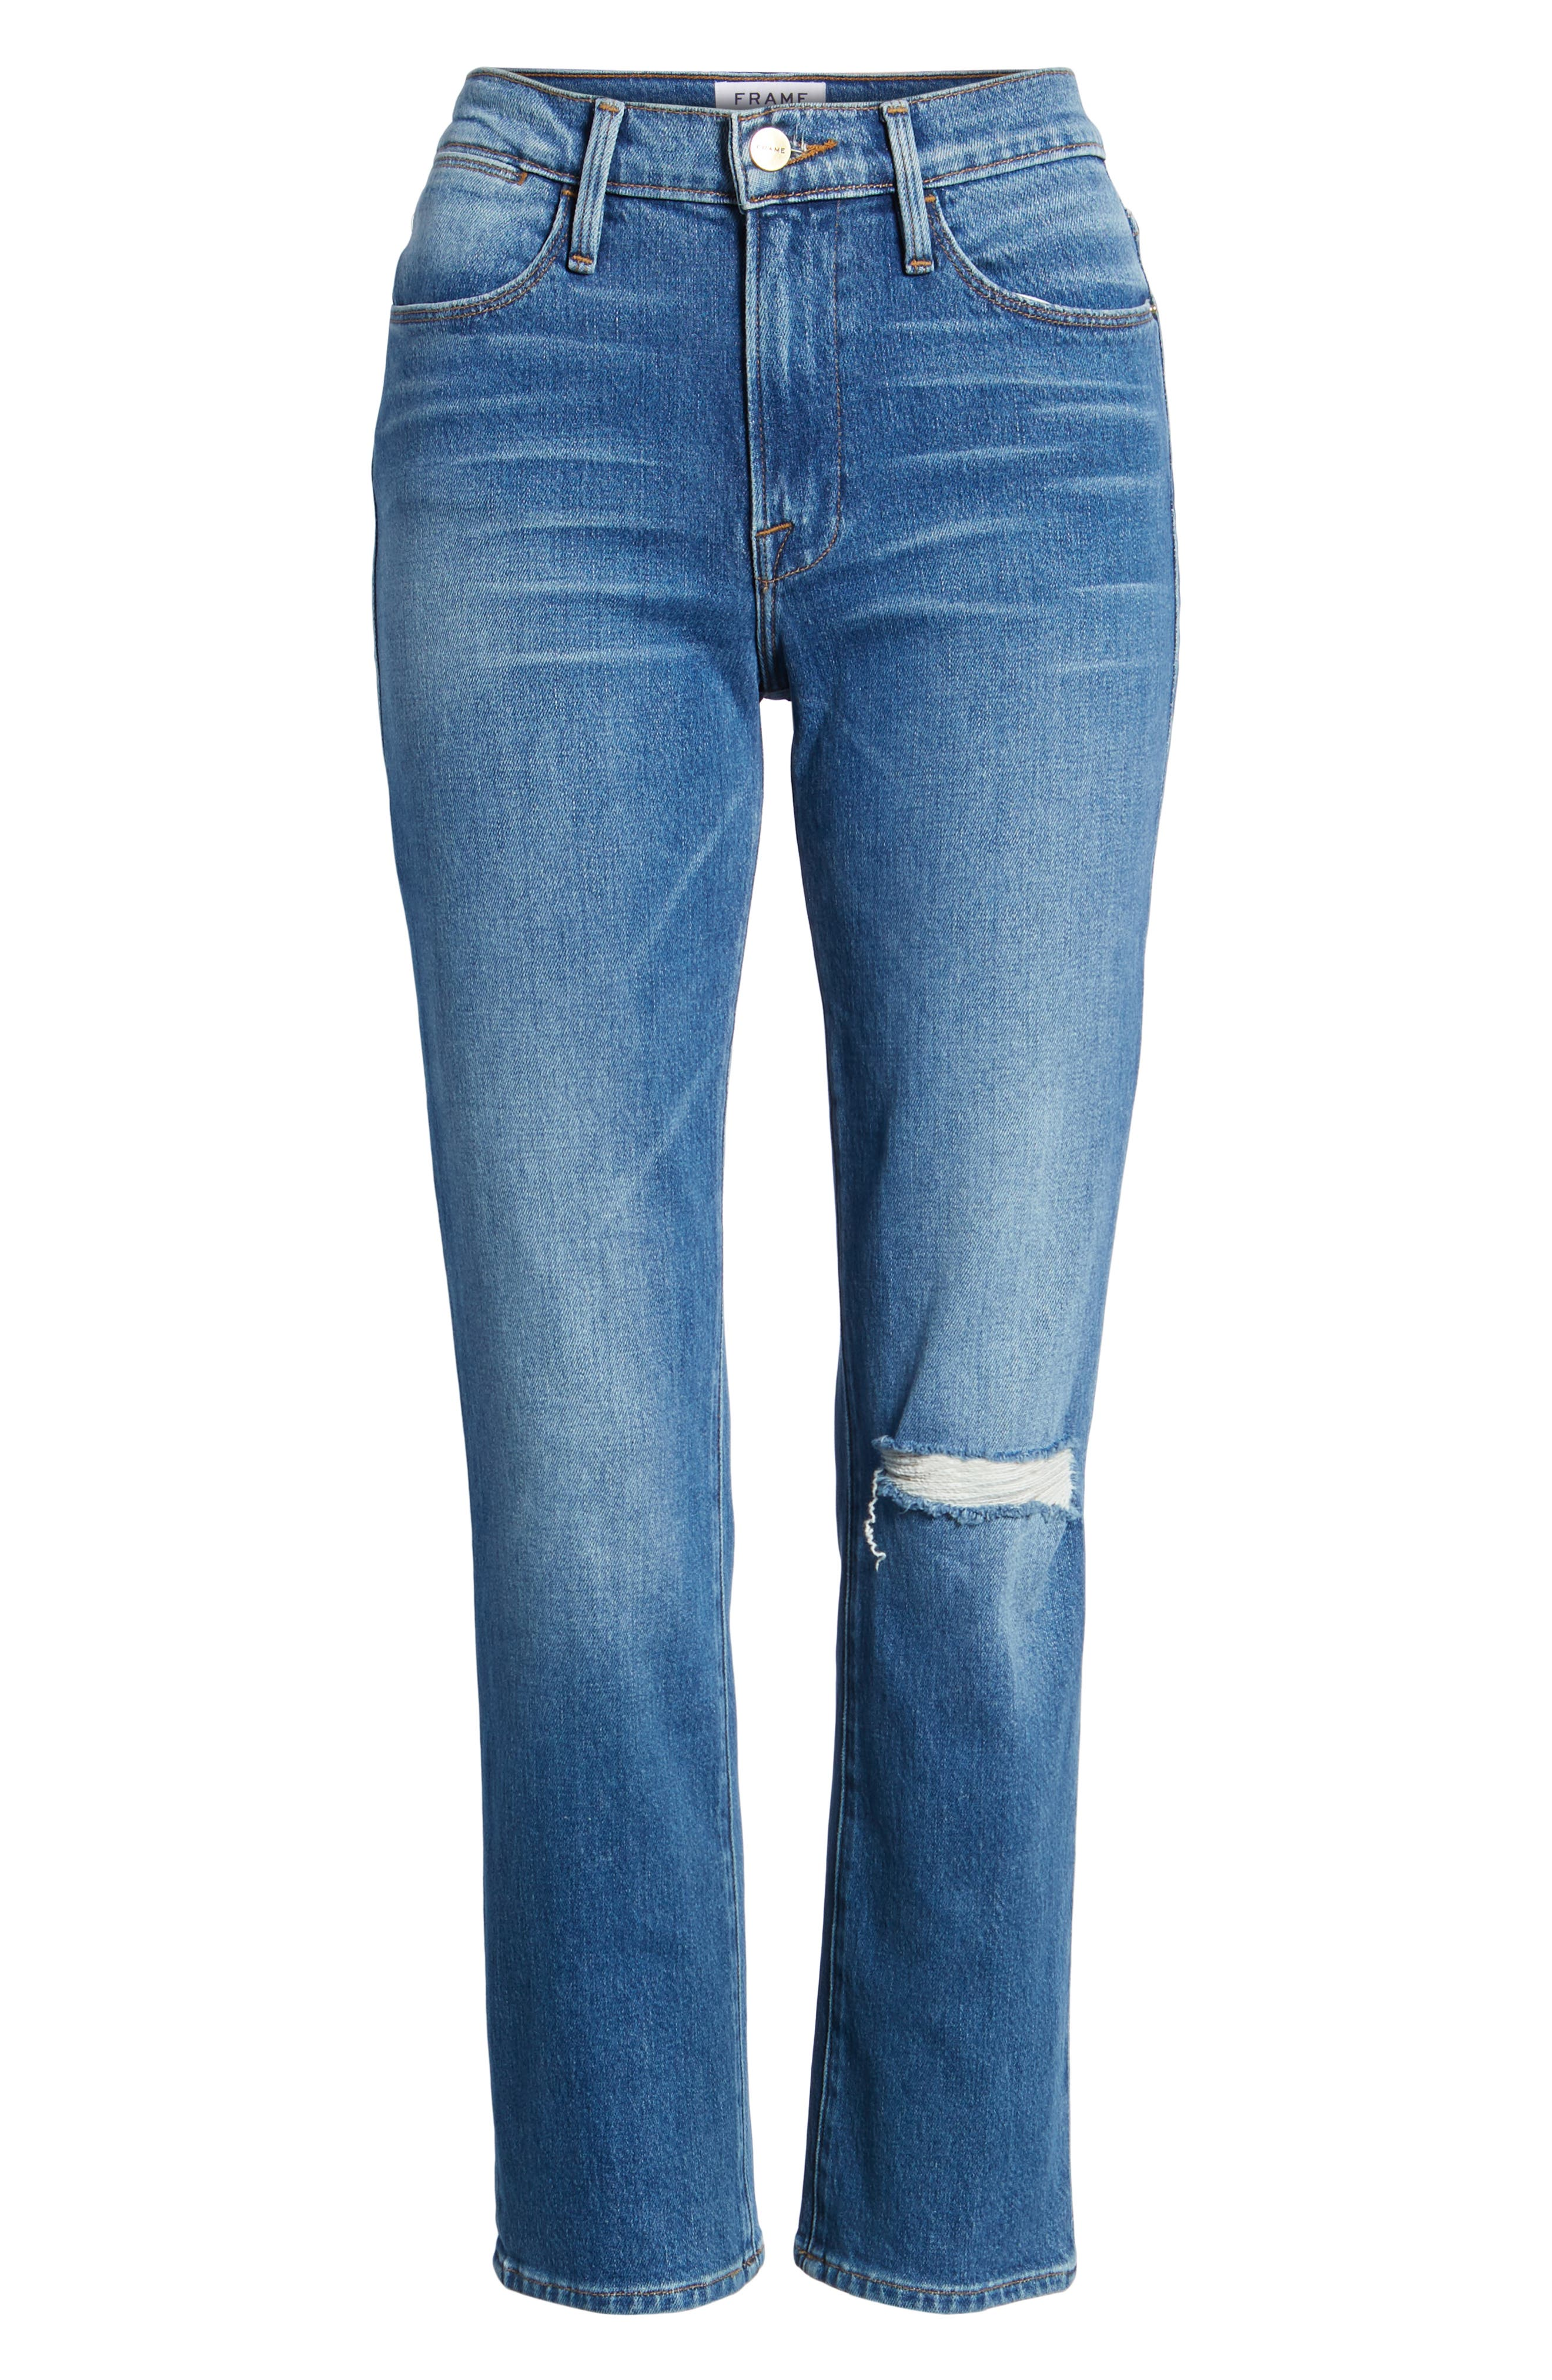 Le High Straight Leg Jeans,                             Alternate thumbnail 7, color,                             420